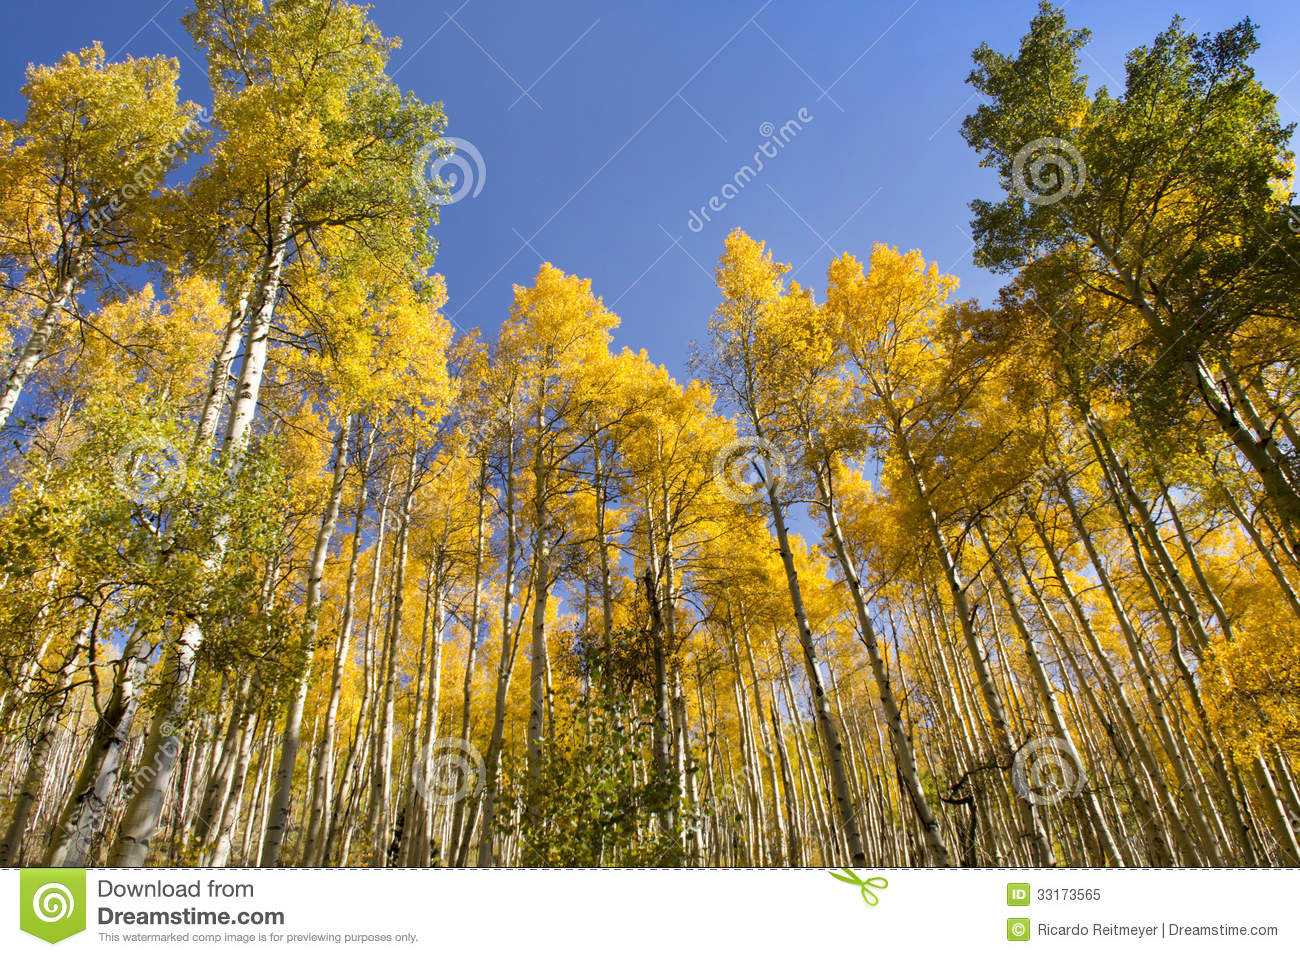 vail mountain map with Royalty Free Stock Photo Very Tall Golden Fall Aspen Trees Vail Colorado Stand Out Brightly Against Rich Blue Sky Image33173565 on Polaris Slingshot Colorado Driving Laws Updated besides Eagle County additionally Ski Resort in addition Vail Colorado Weather also Howelsen Hill Ski Area.